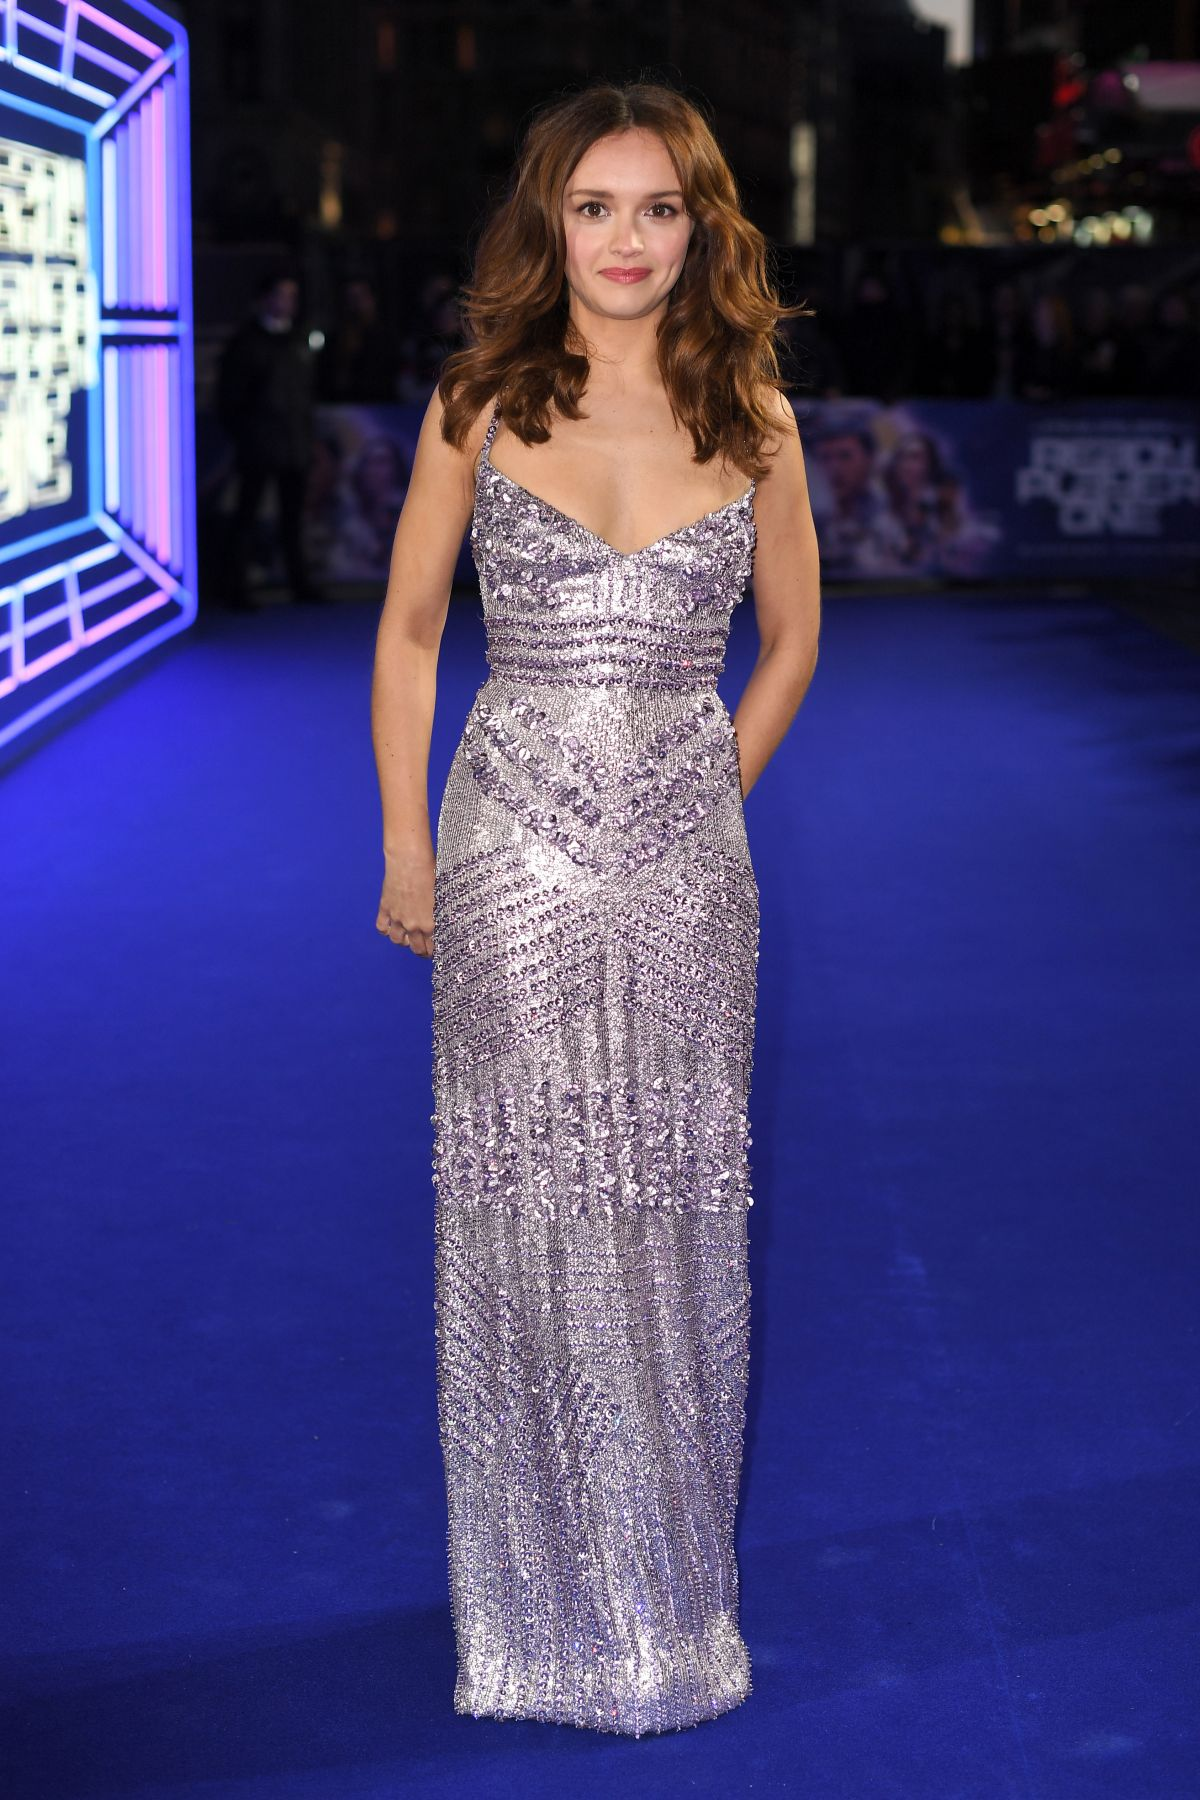 Ready Player One premiere Olivia Cooke